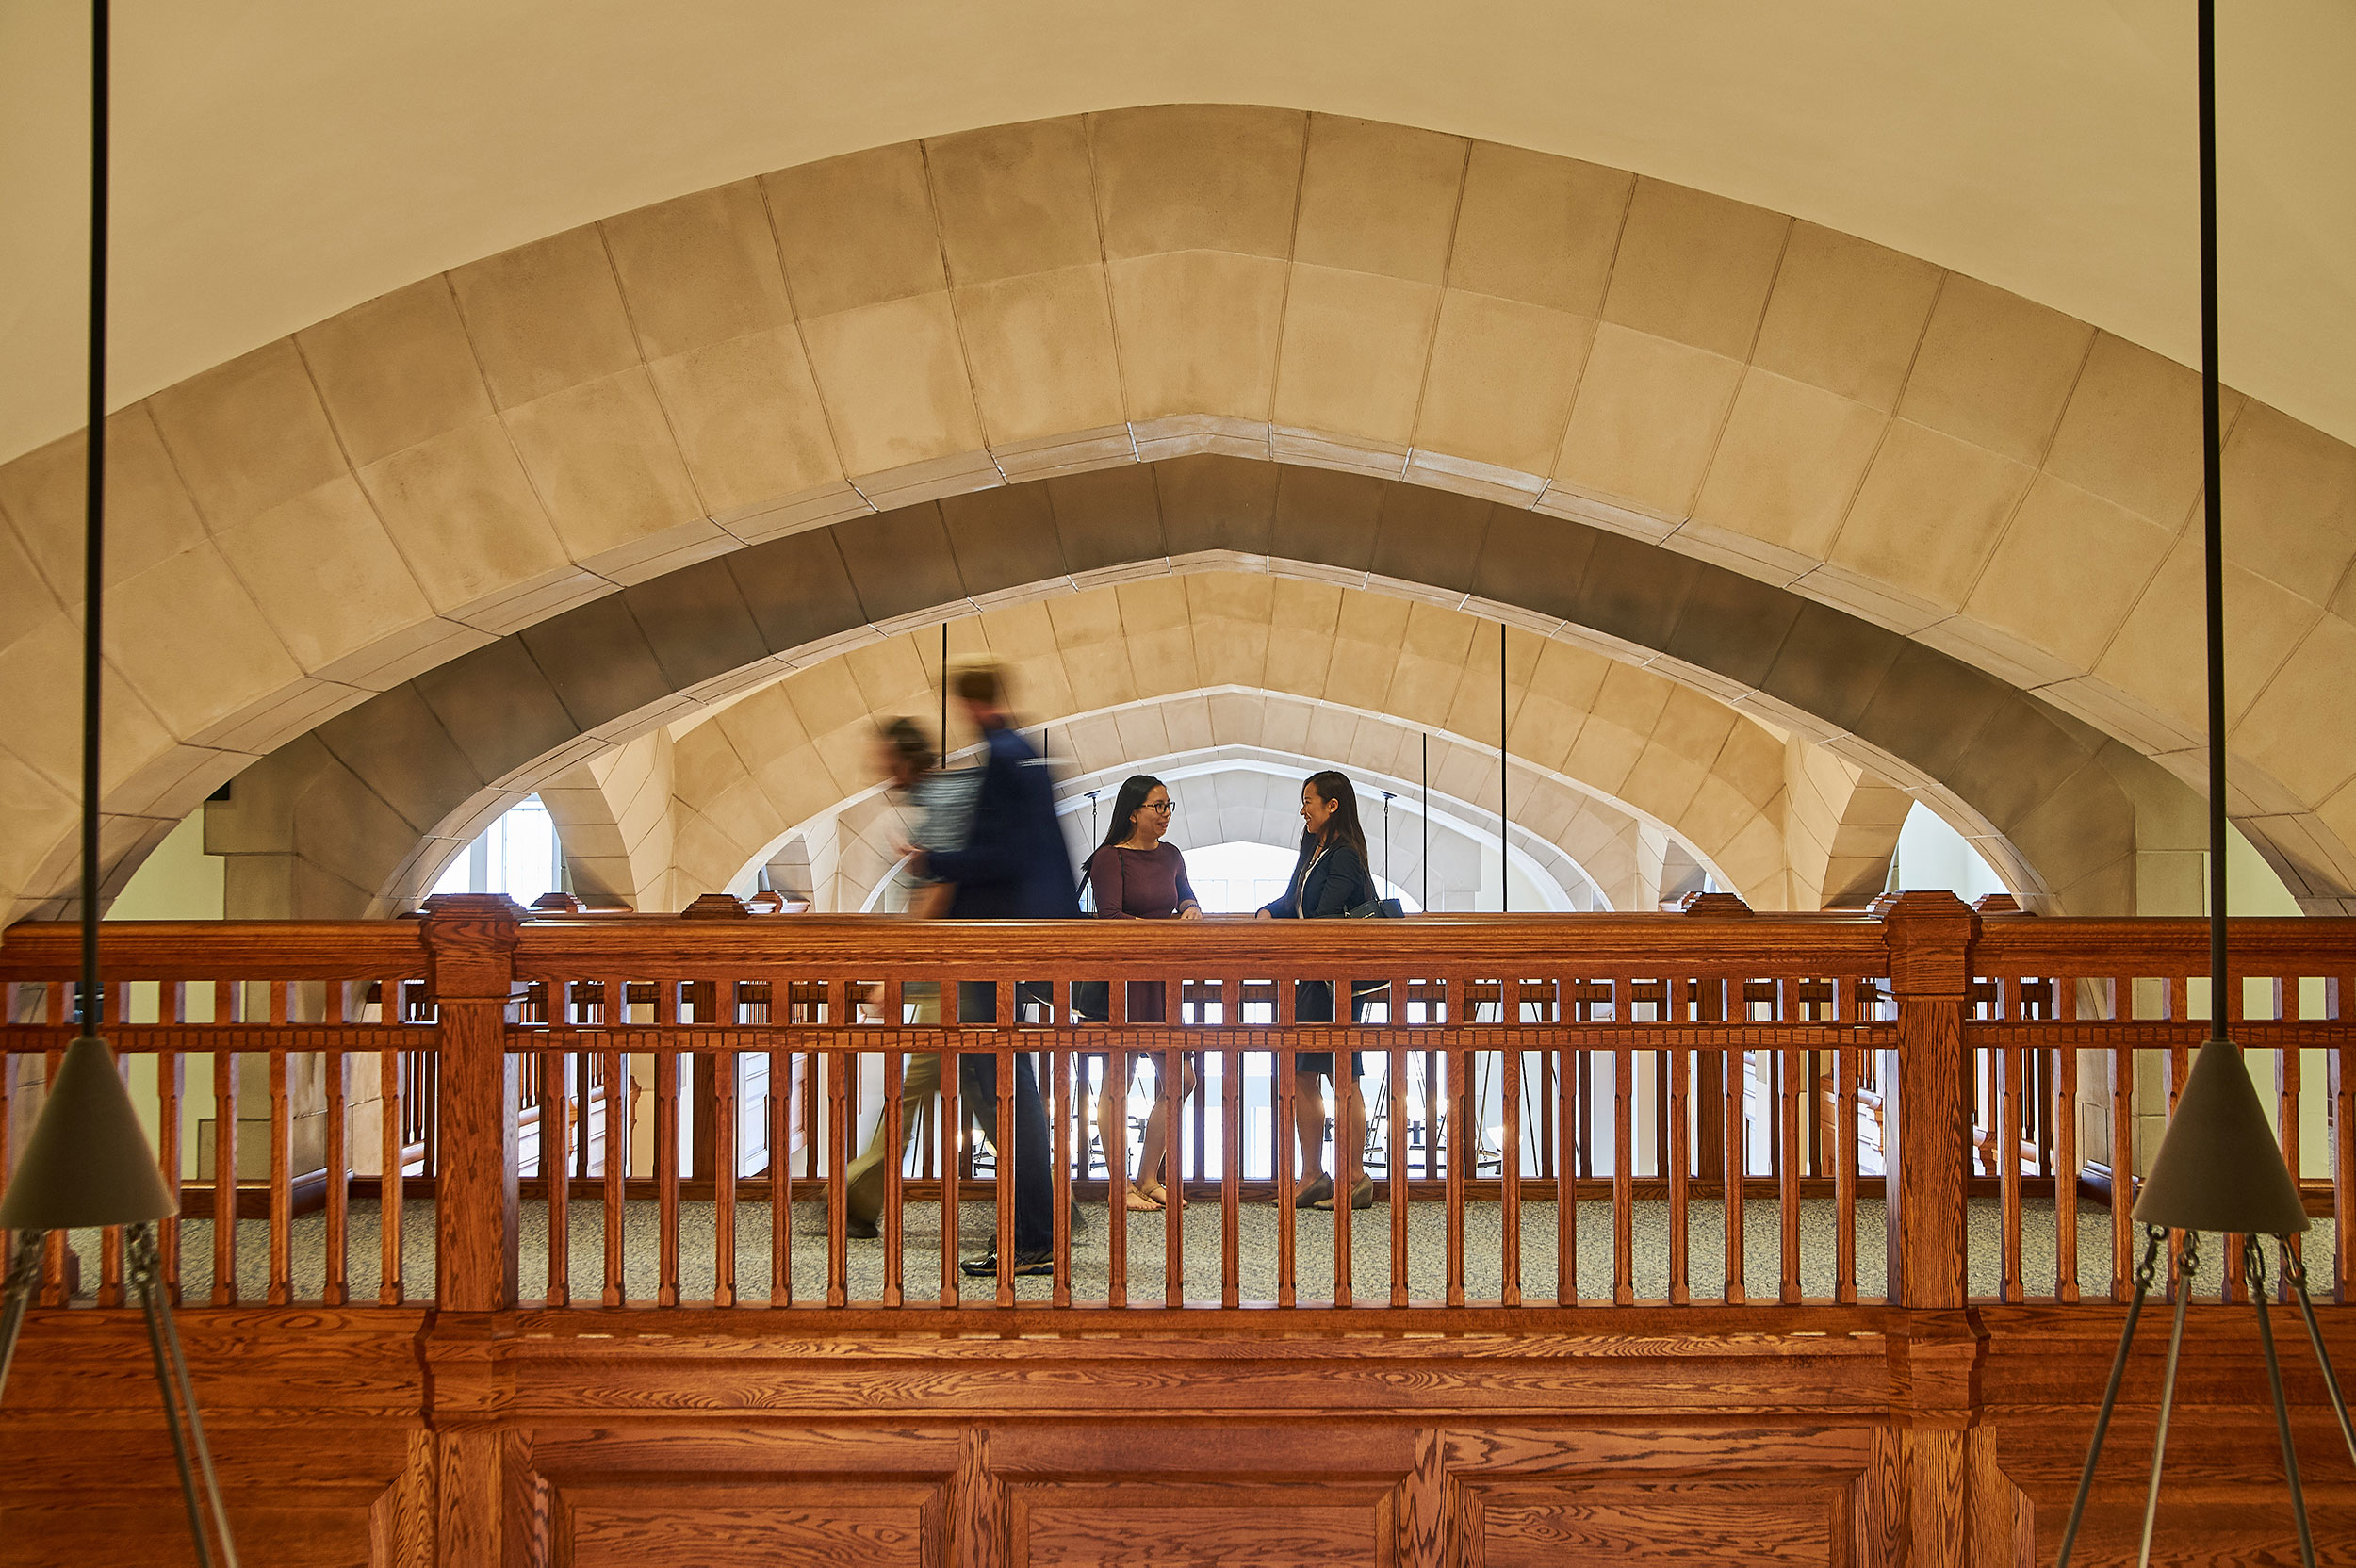 A view inside the Meskill Library at the School of Law